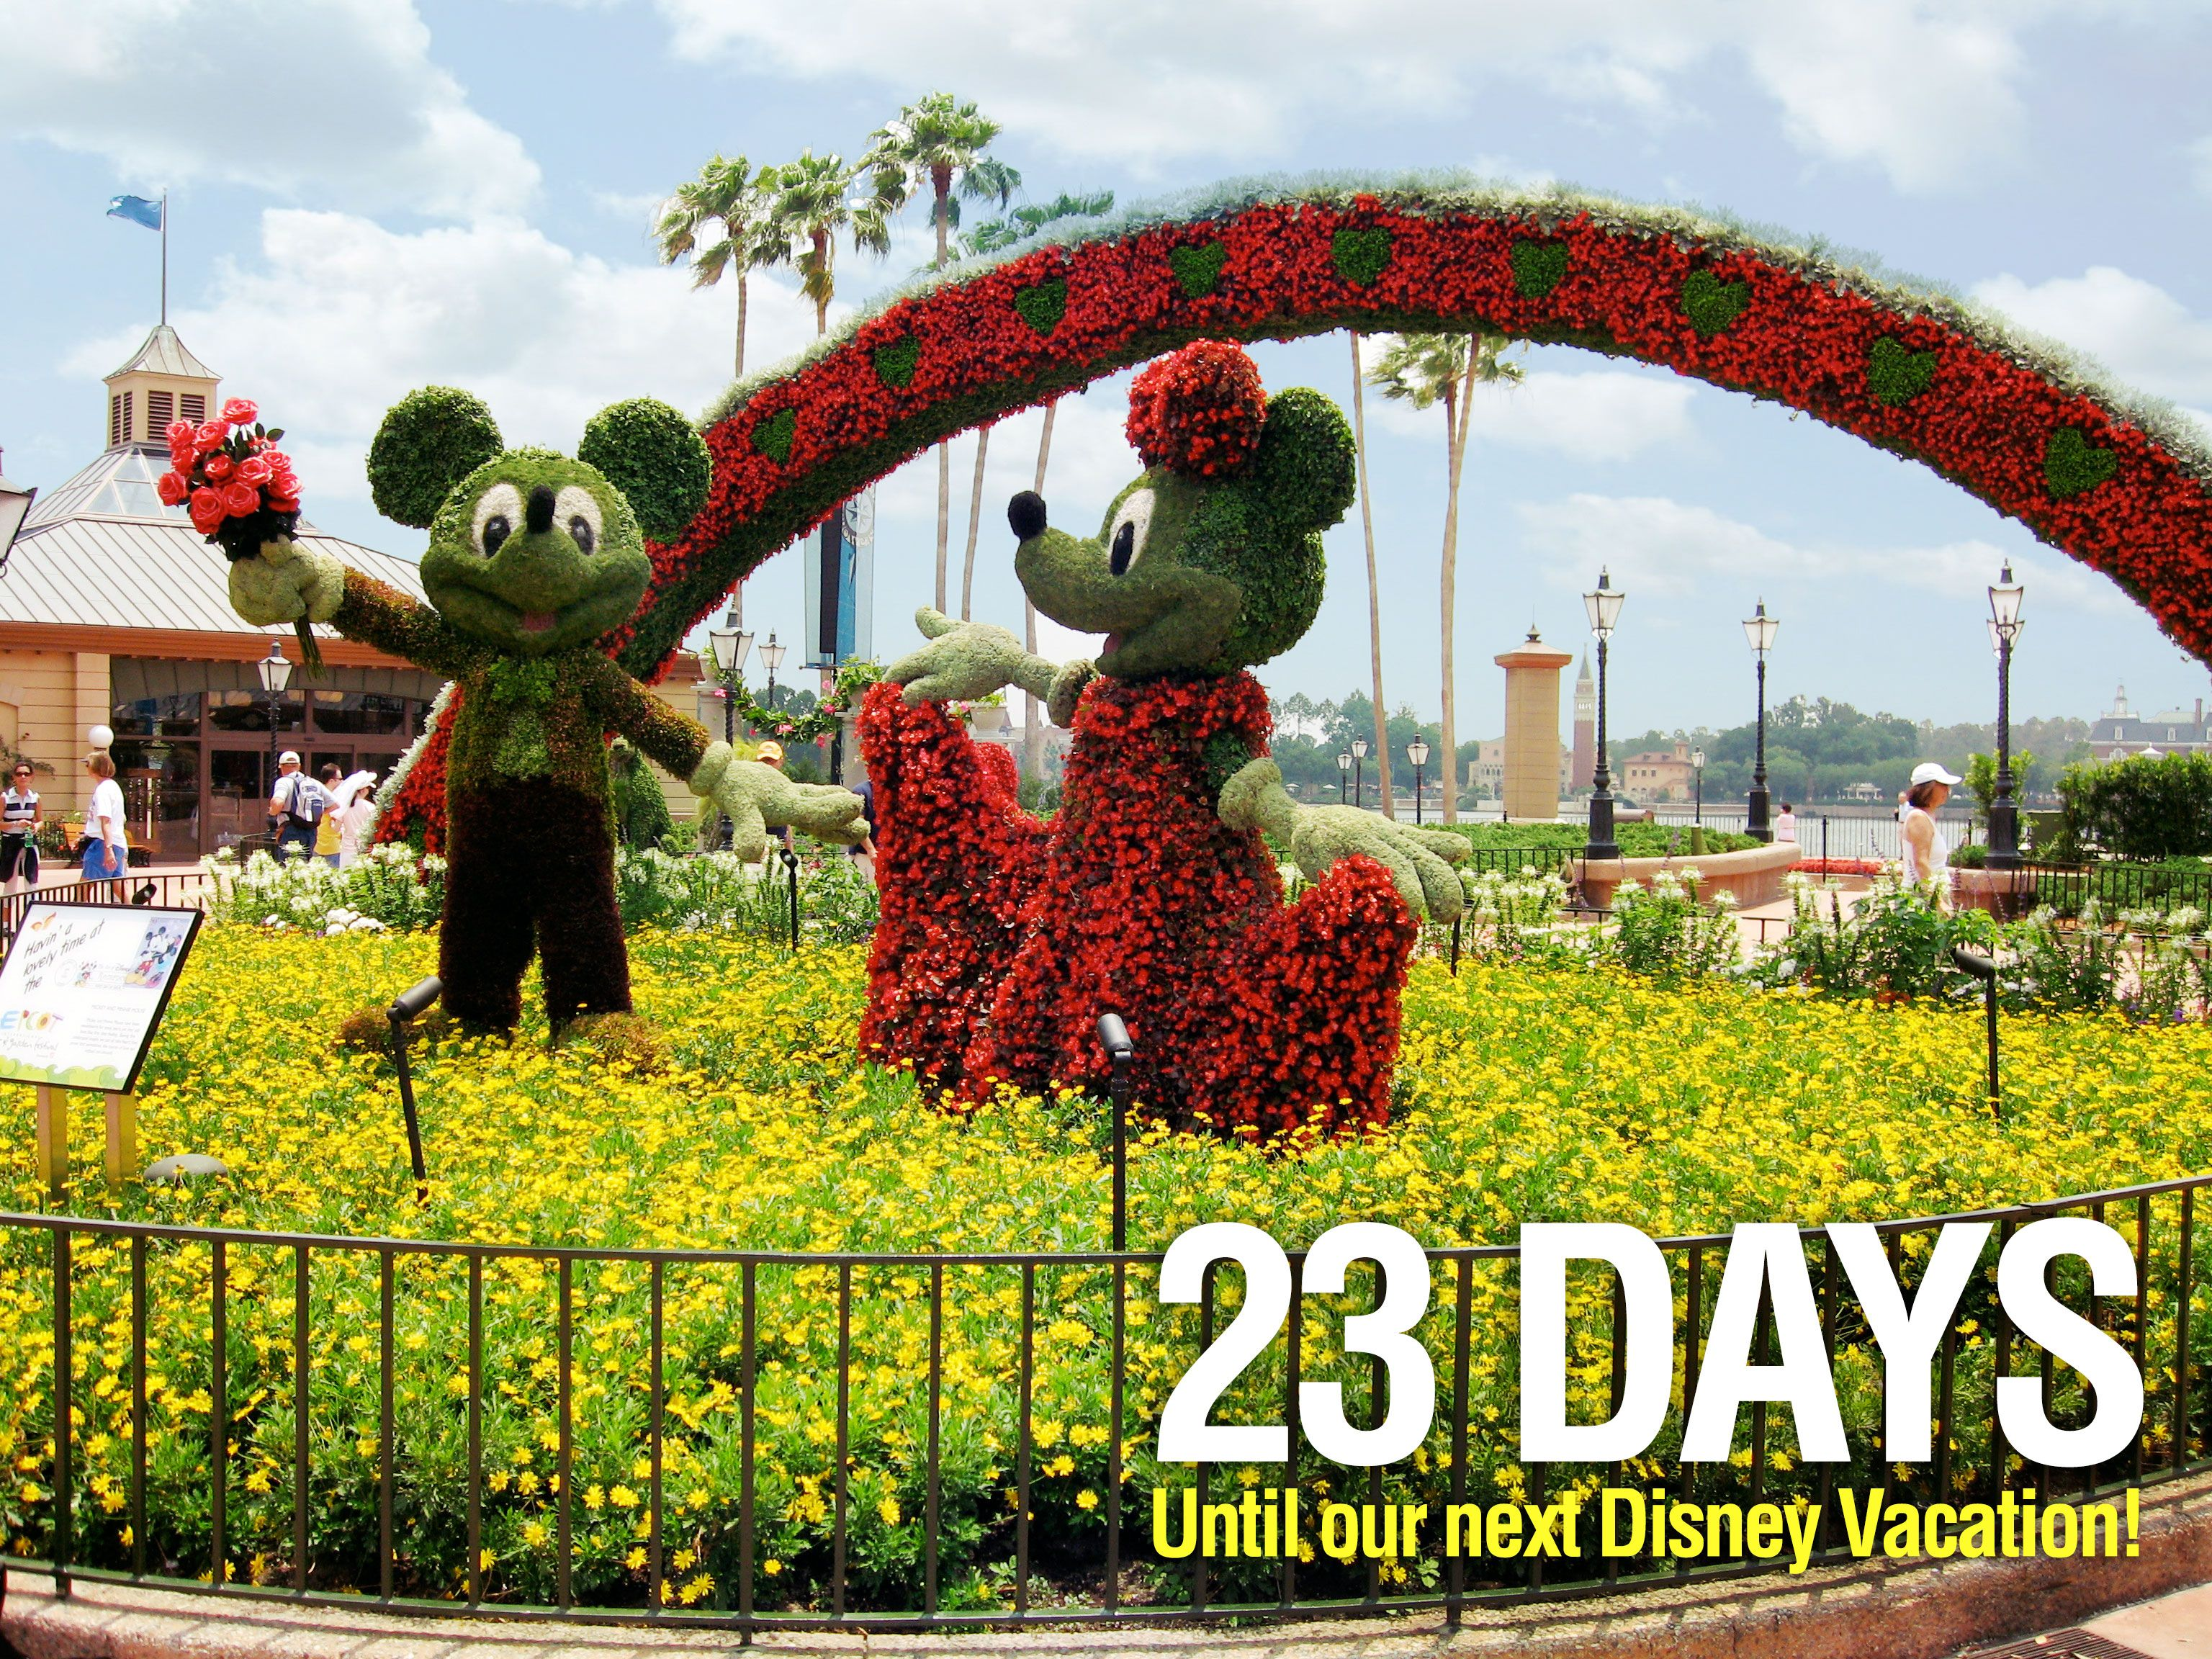 """23 Days until our next Disney Vacation!  We are counting the days to our next Disney trip with our favorite pics taken at the parks. This photo is of a Mickey and Minnie topiary located in Epcot. Let us know if you """"Like""""."""